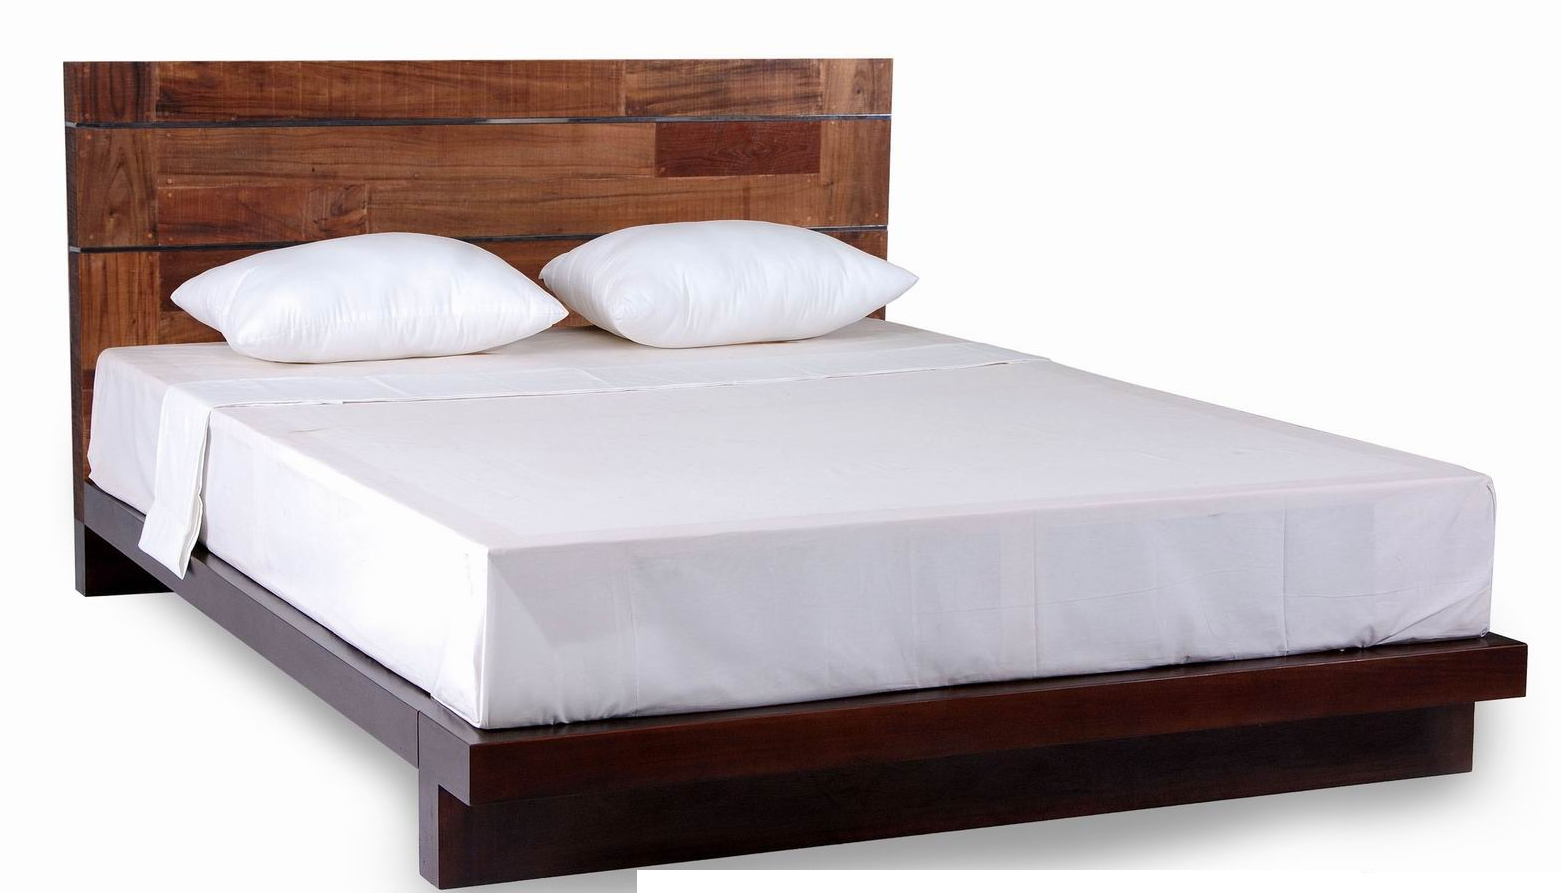 Swell Bed Hd Png Transparent Bed Hd Png Images Pluspng Interior Design Ideas Ghosoteloinfo